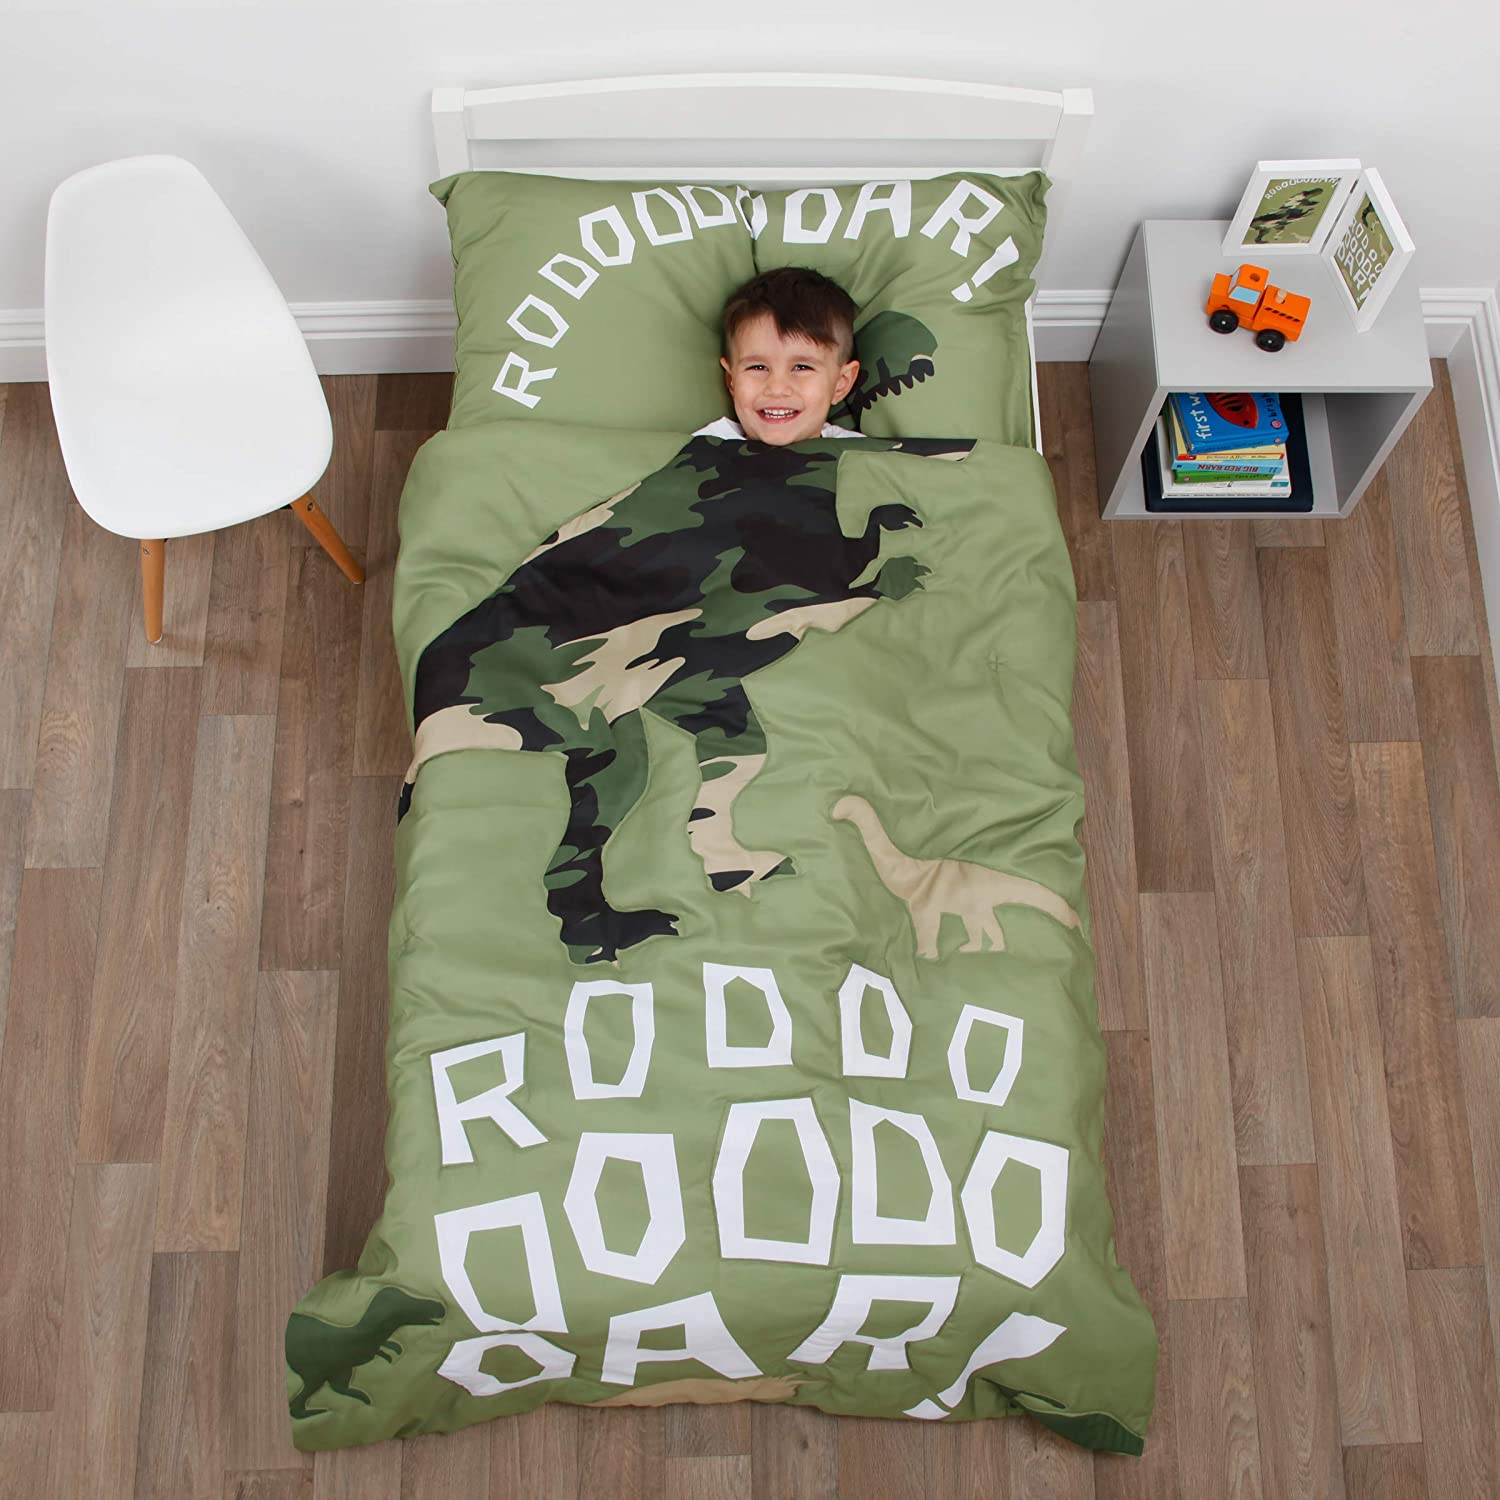 Everything Kids Dinosaur Green Camouflage 4Piece Toddler Bed Set - Comforter, Fitted Bottom Sheet, Flat Top Sheet, Standard Size Pillowcase, Green, Olive, White